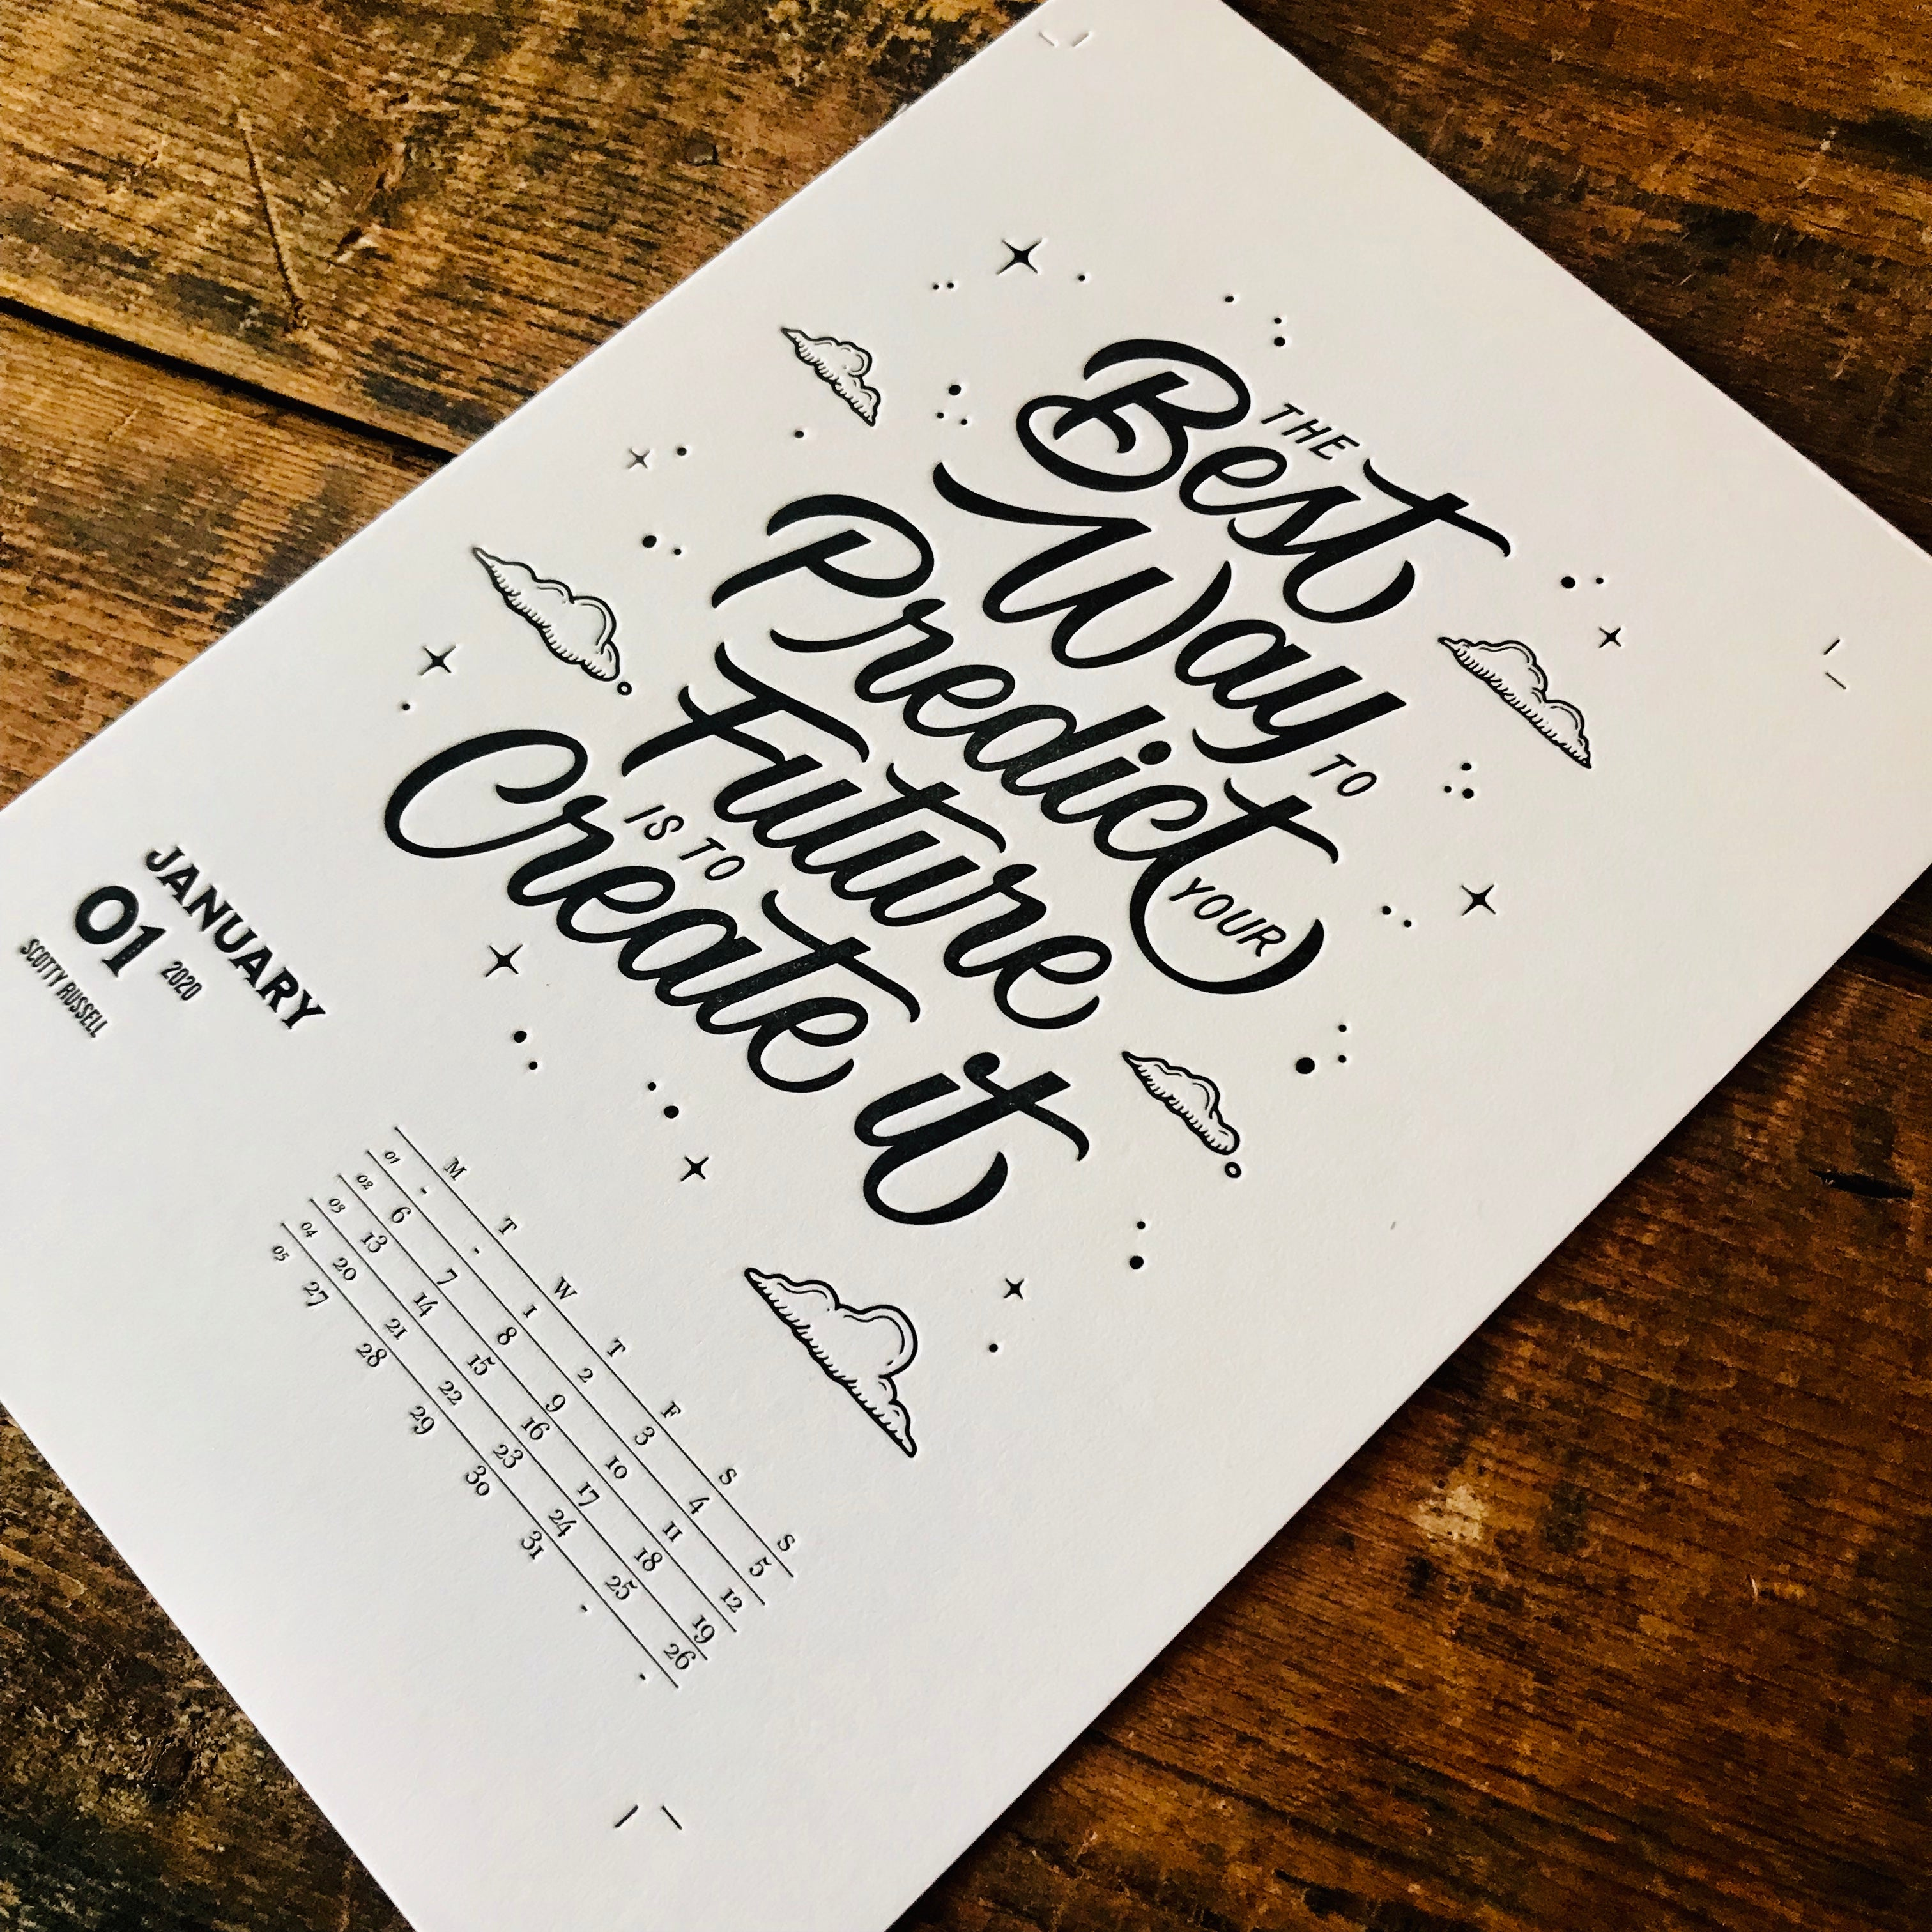 2020 letterpress calendar Artist's proof 01 - MR CUP